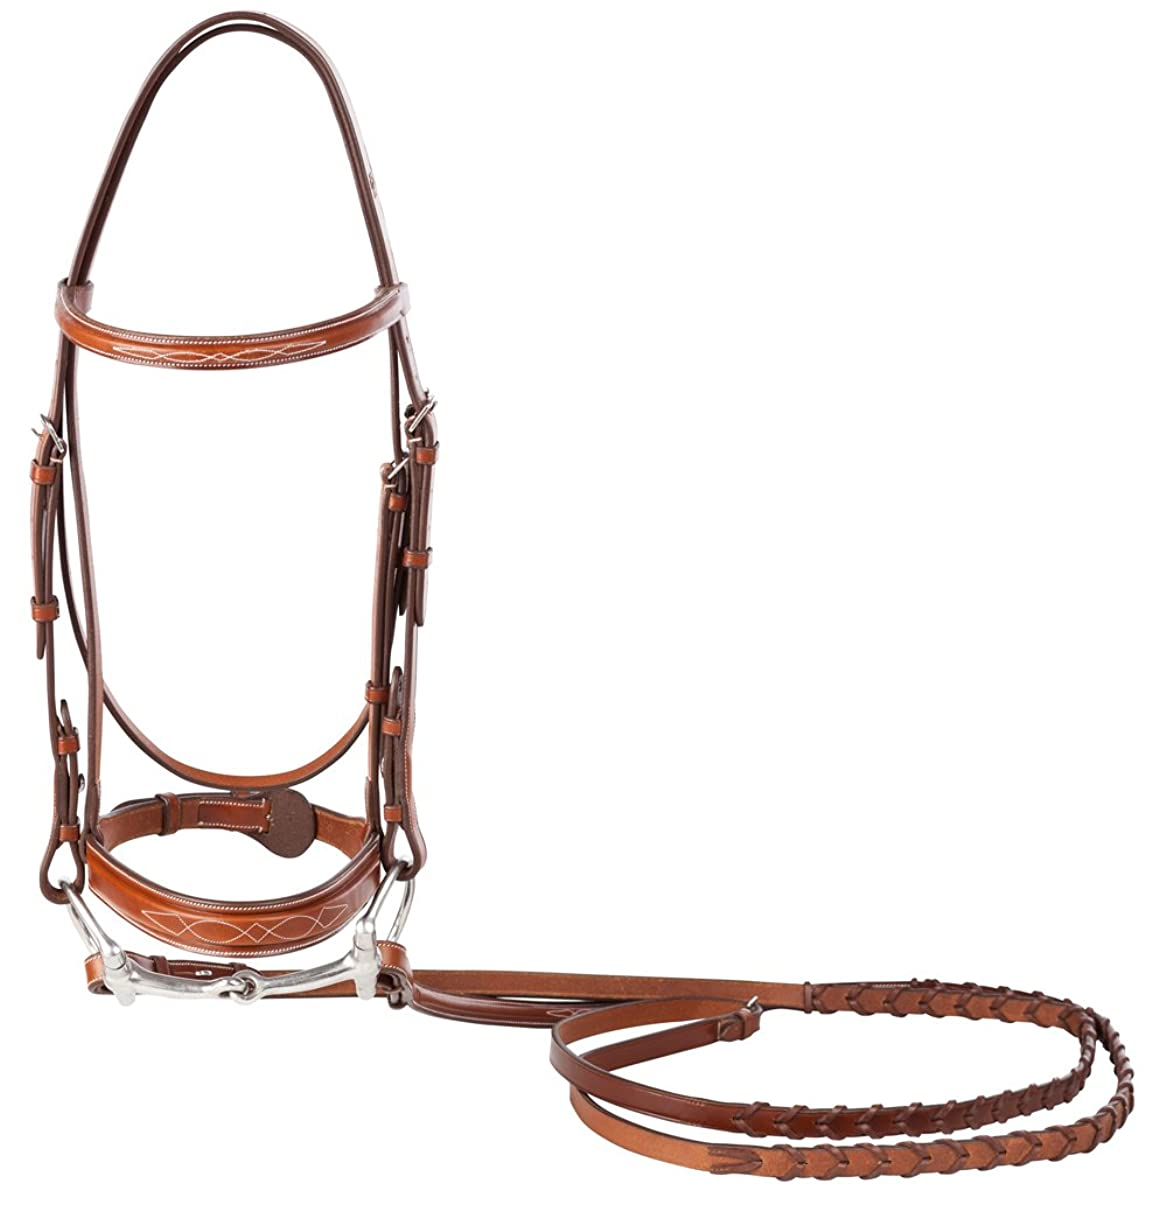 Huntley Equestrian Fancy Stitched Sedgwick Leather English Bridle and Reins